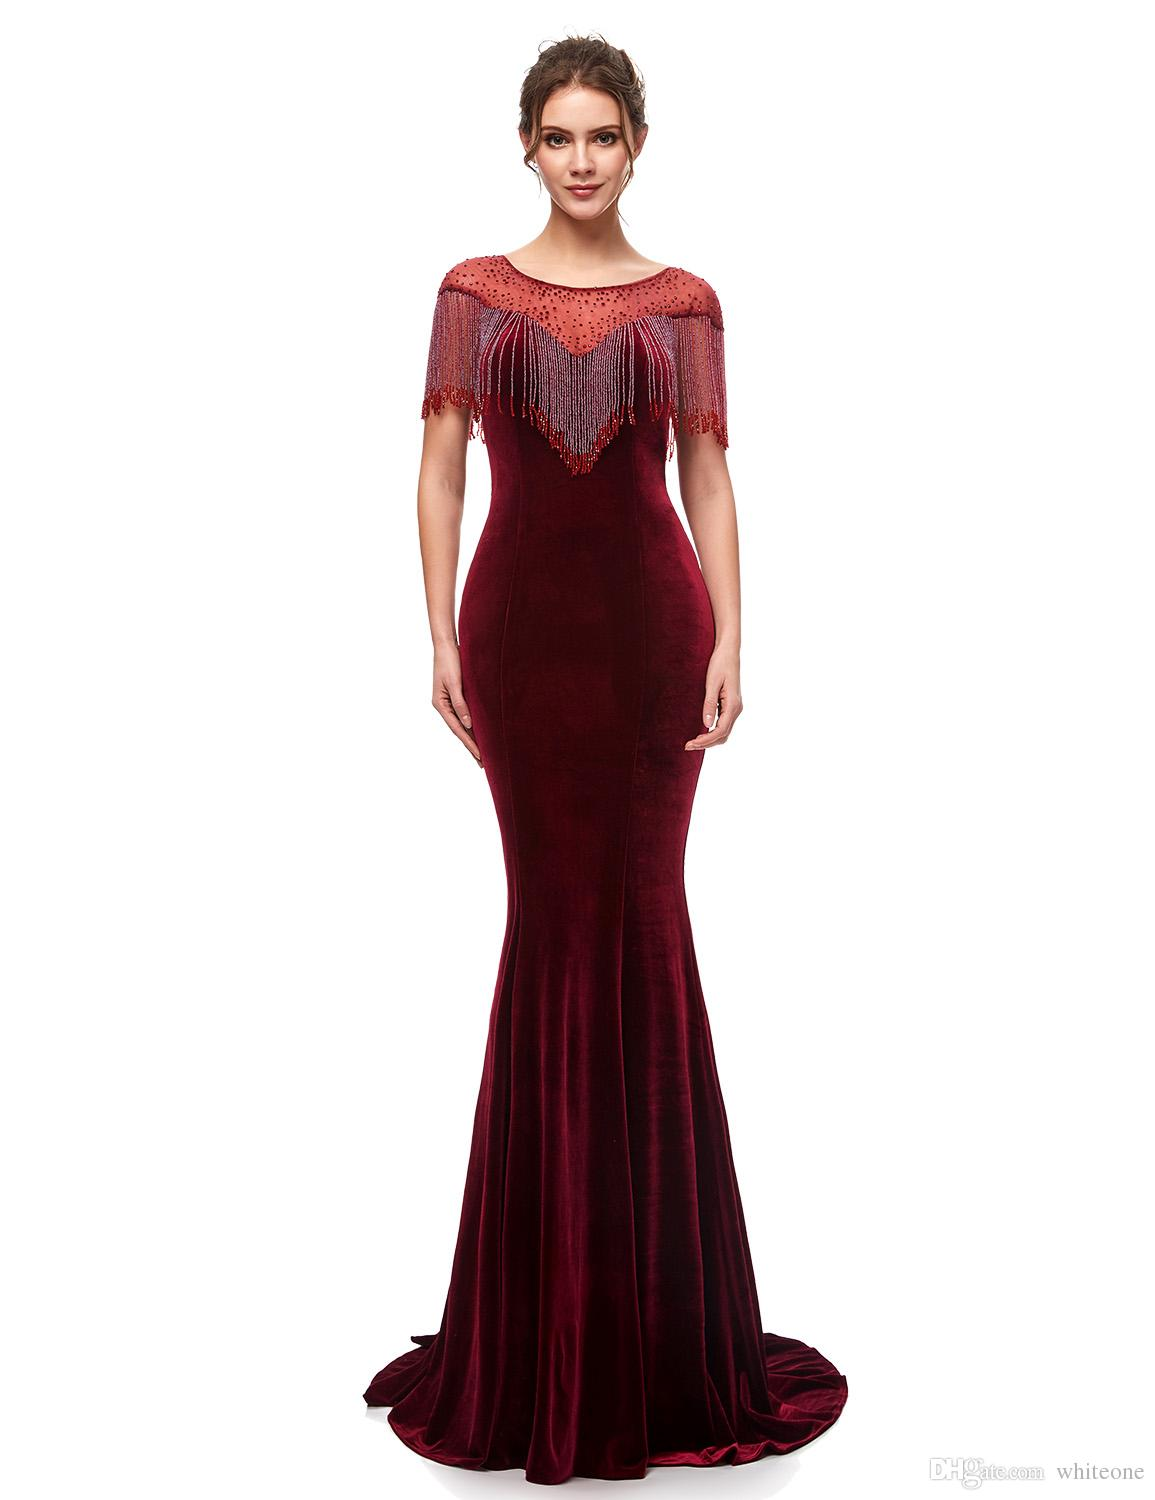 2019 New Stylish Evening Dresses Elegant Velvet With Tassel Formal Long  Evening Gowns Floor Length Pron Party Gowns Robe De Soiree 5400 Evening  Dresses Maxi ... 323240869743